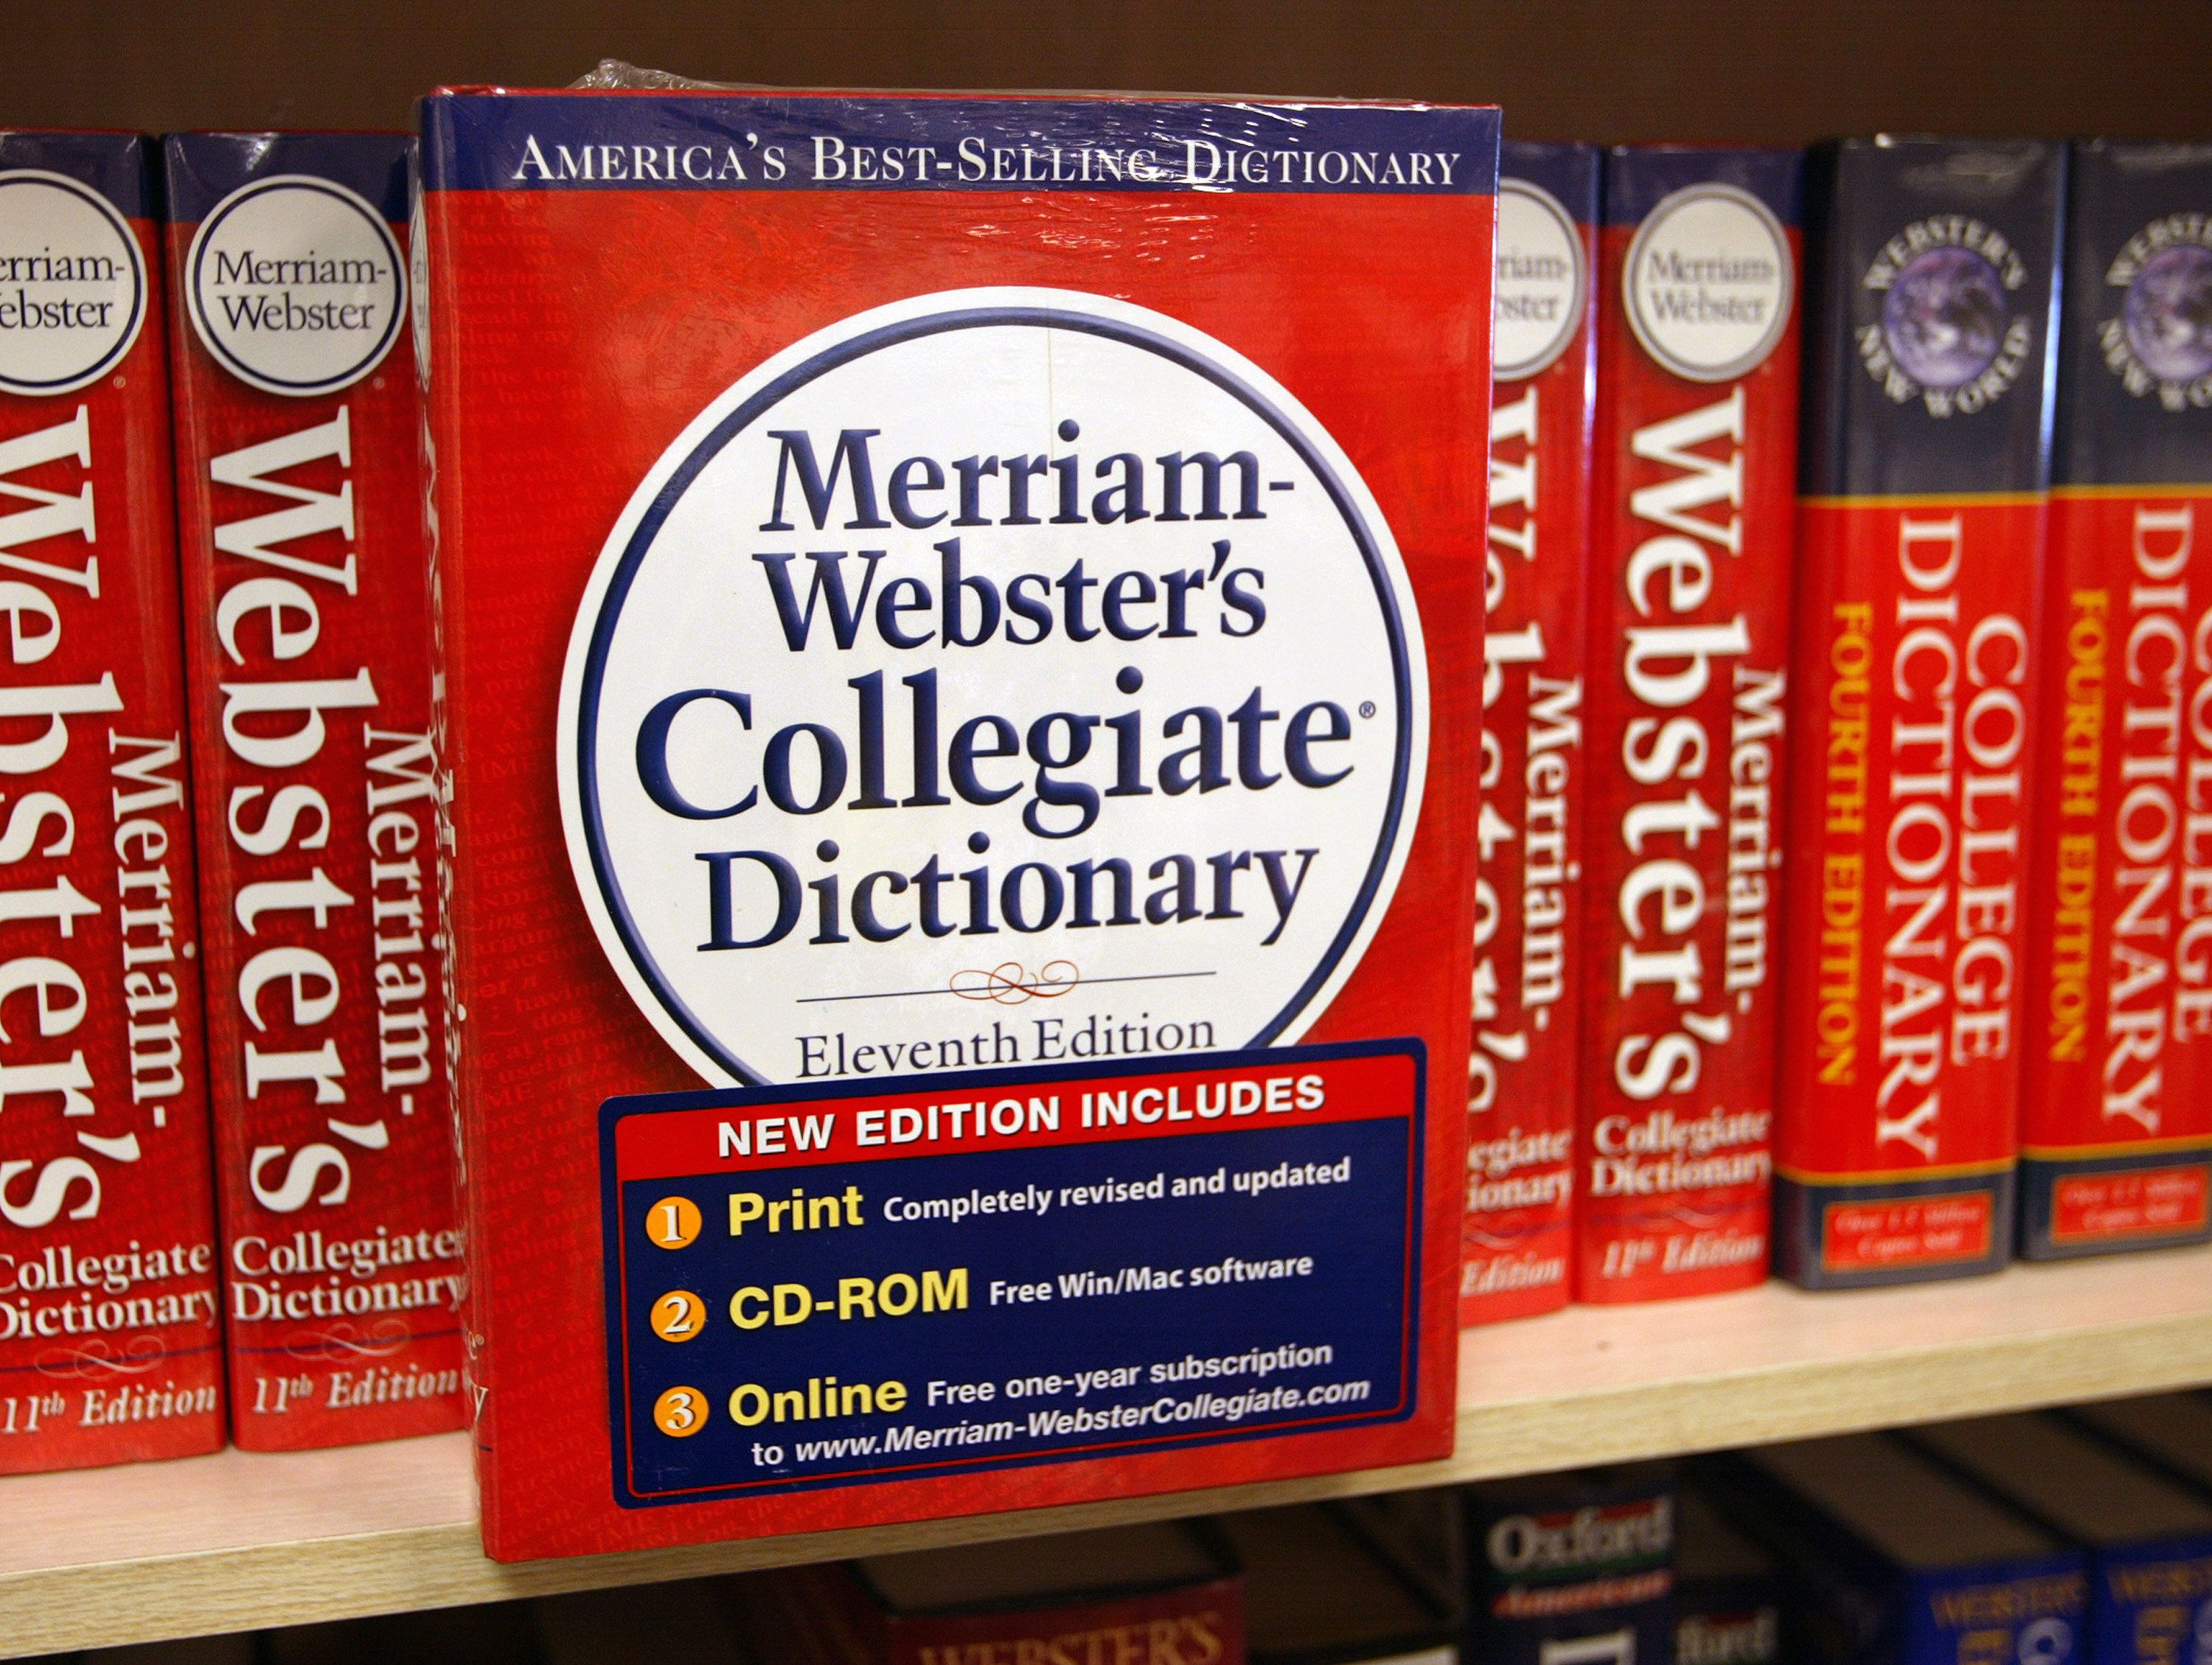 NILES, IL - NOVEMBER 10:  A Merriam-Webster's Collegiate Dictionary is displayed in a bookstore November 10, 2003 in Niles, Illinois. McDonald's said it is not happy with the word 'McJob', which is defined as a dead-end job, in the new Merriam-Webster's Collegiate Dictionary. Also, the fast-food giant announced that global Systemwide sales for Brand McDonald's increased 17.8 percent in October compared to October 2002.  (Photo by Tim Boyle/Getty Images)